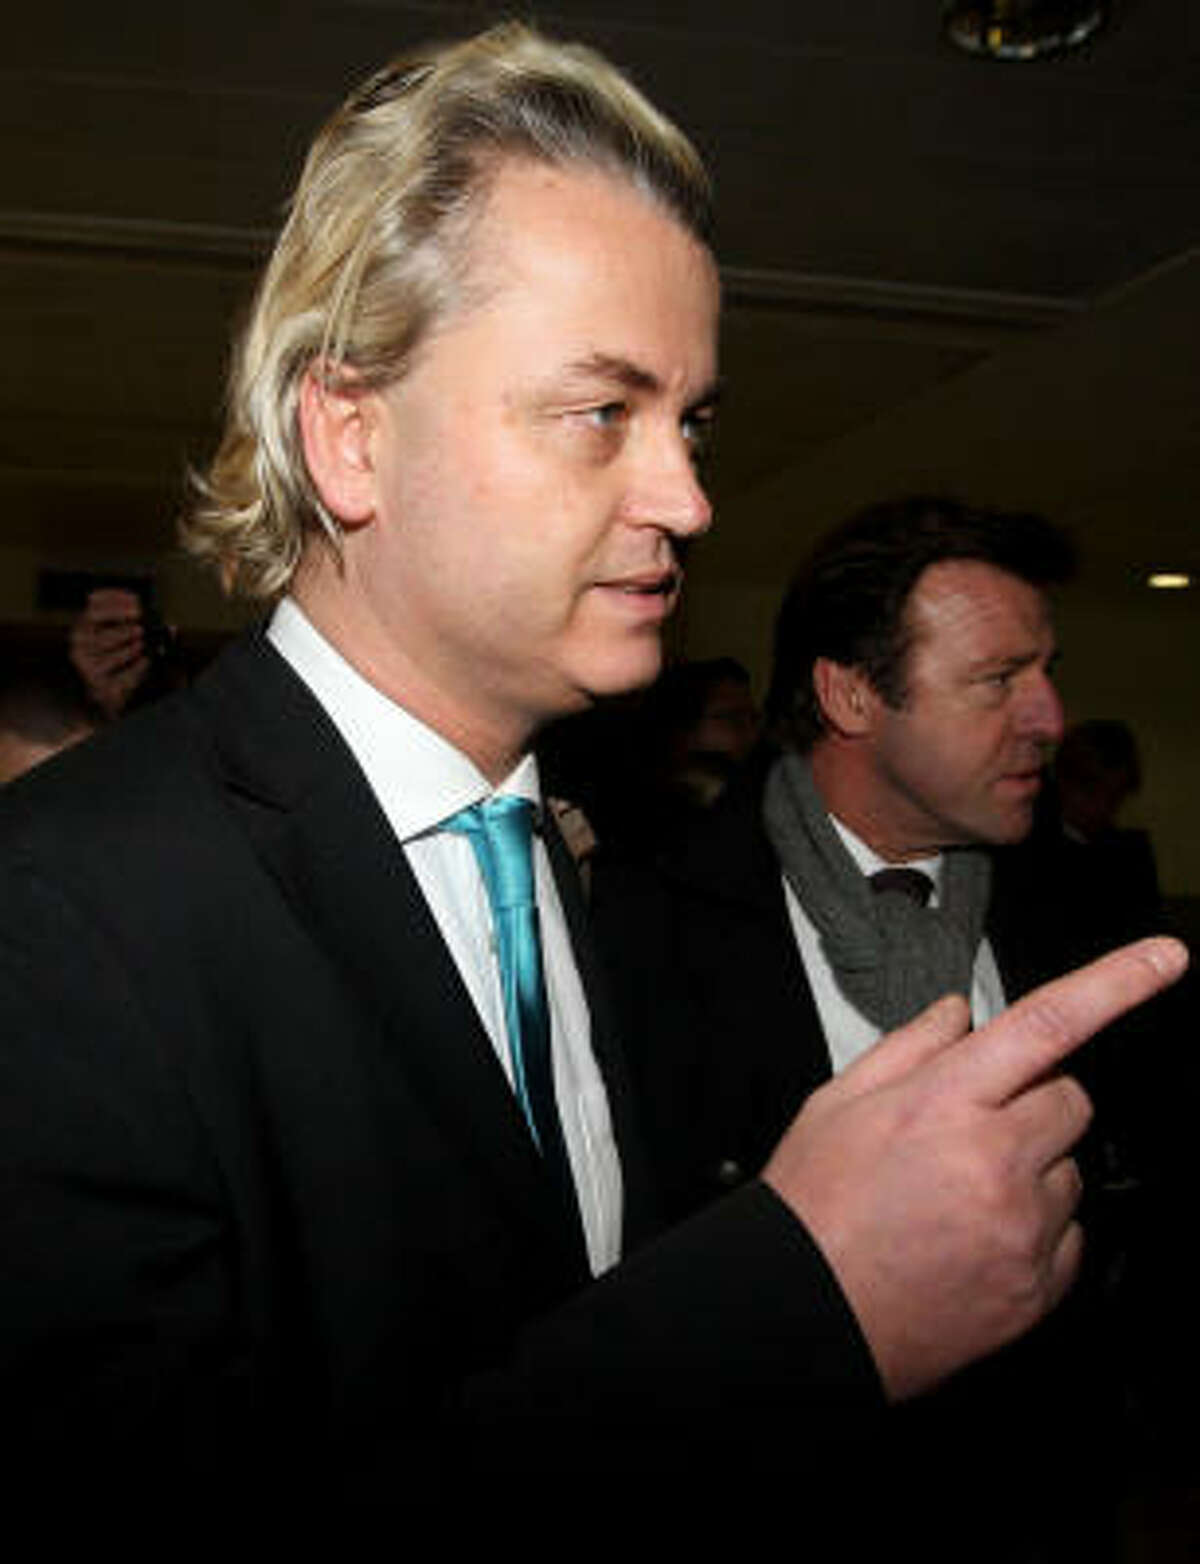 Dutch right-wing politician Geert Wilders, left, seen at Heathrow Airport, London, after being banned from entering the country, Thursday. Wilders planned to show his anti-Islam film